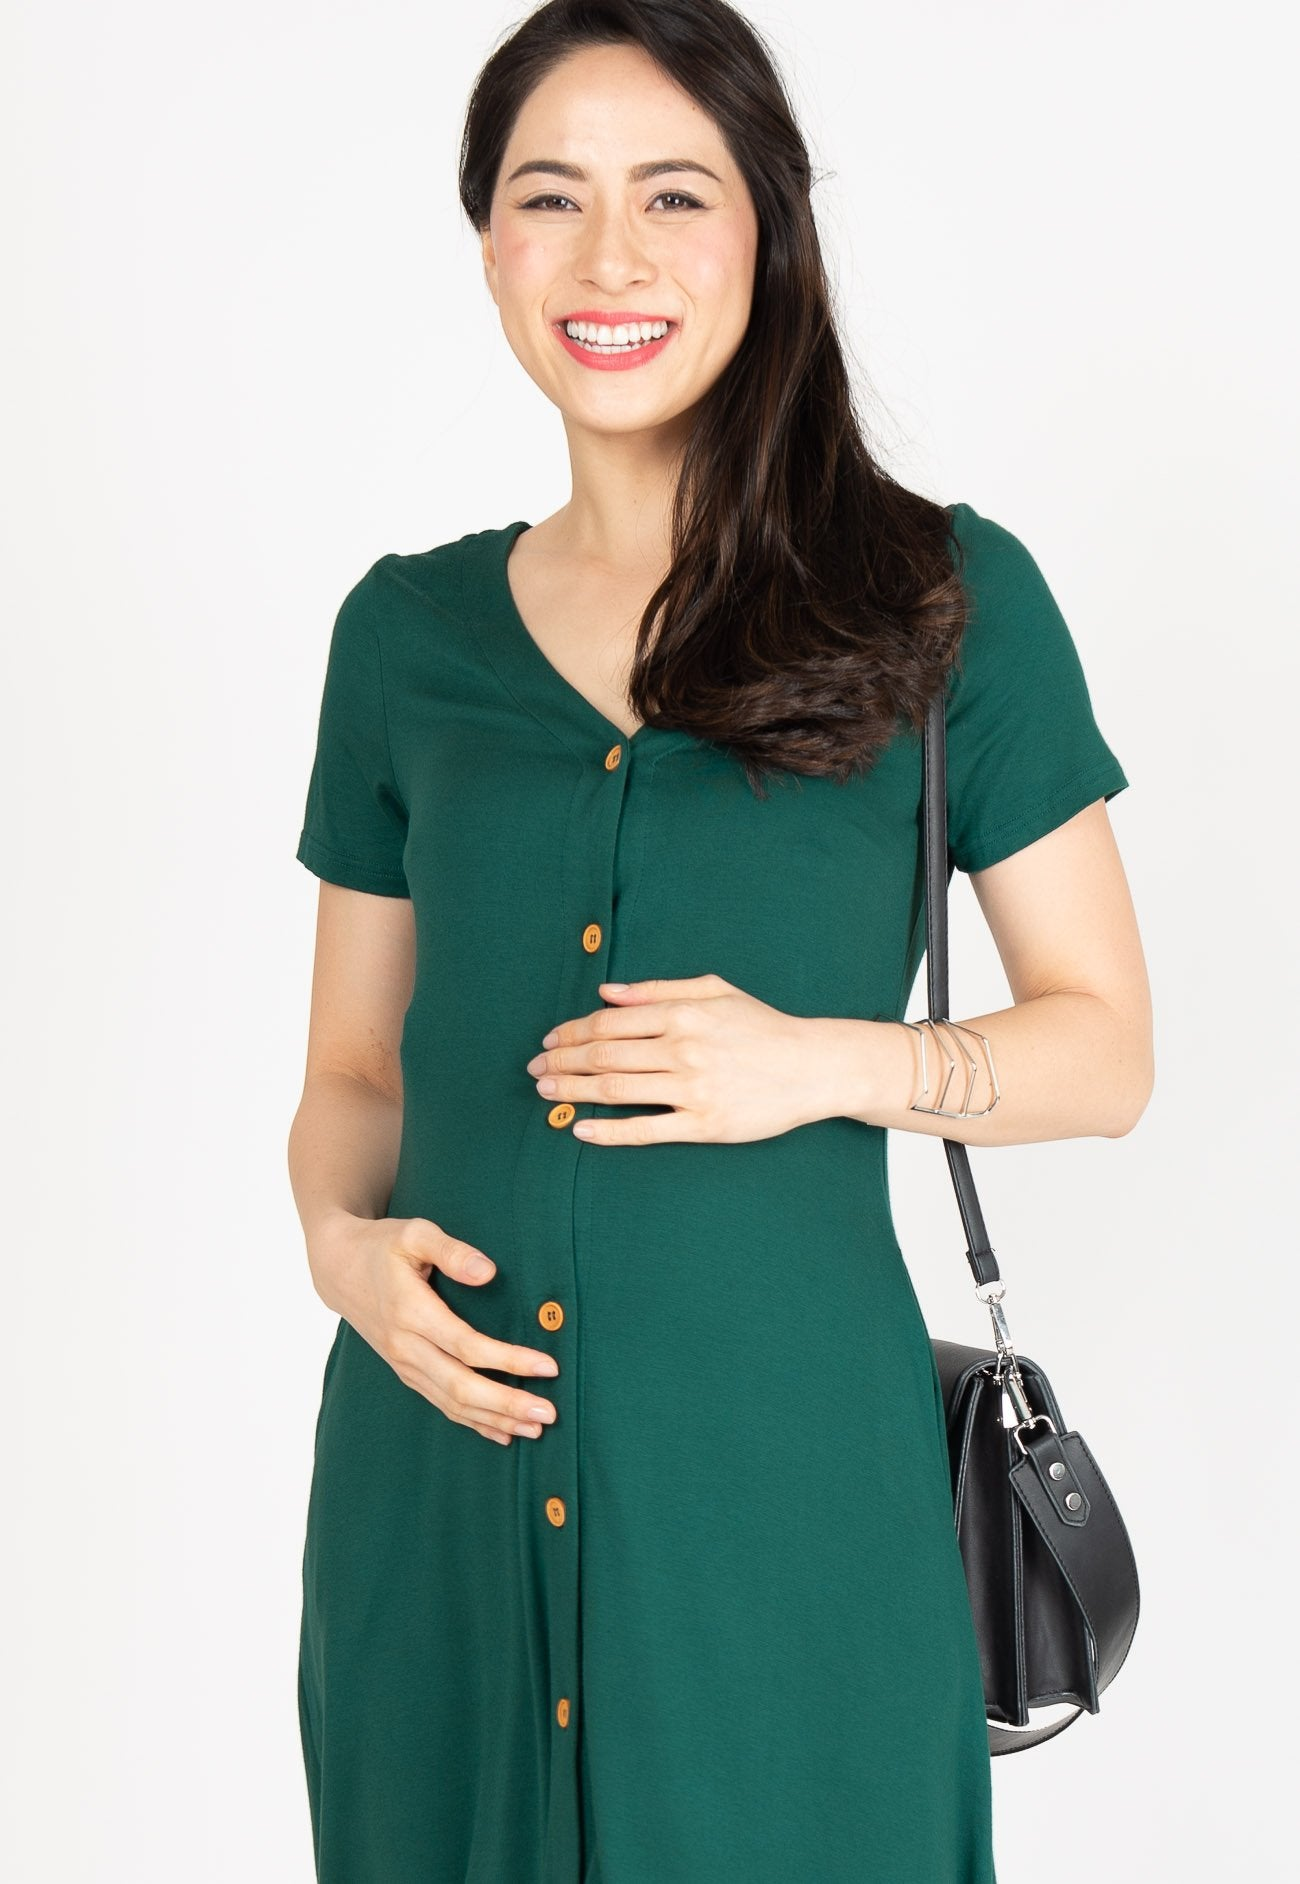 587fe328eb0b1 ... Lilith Button Nursing Dress in Forest Green by Jump Eat Cry - Maternity  and nursing wear ...